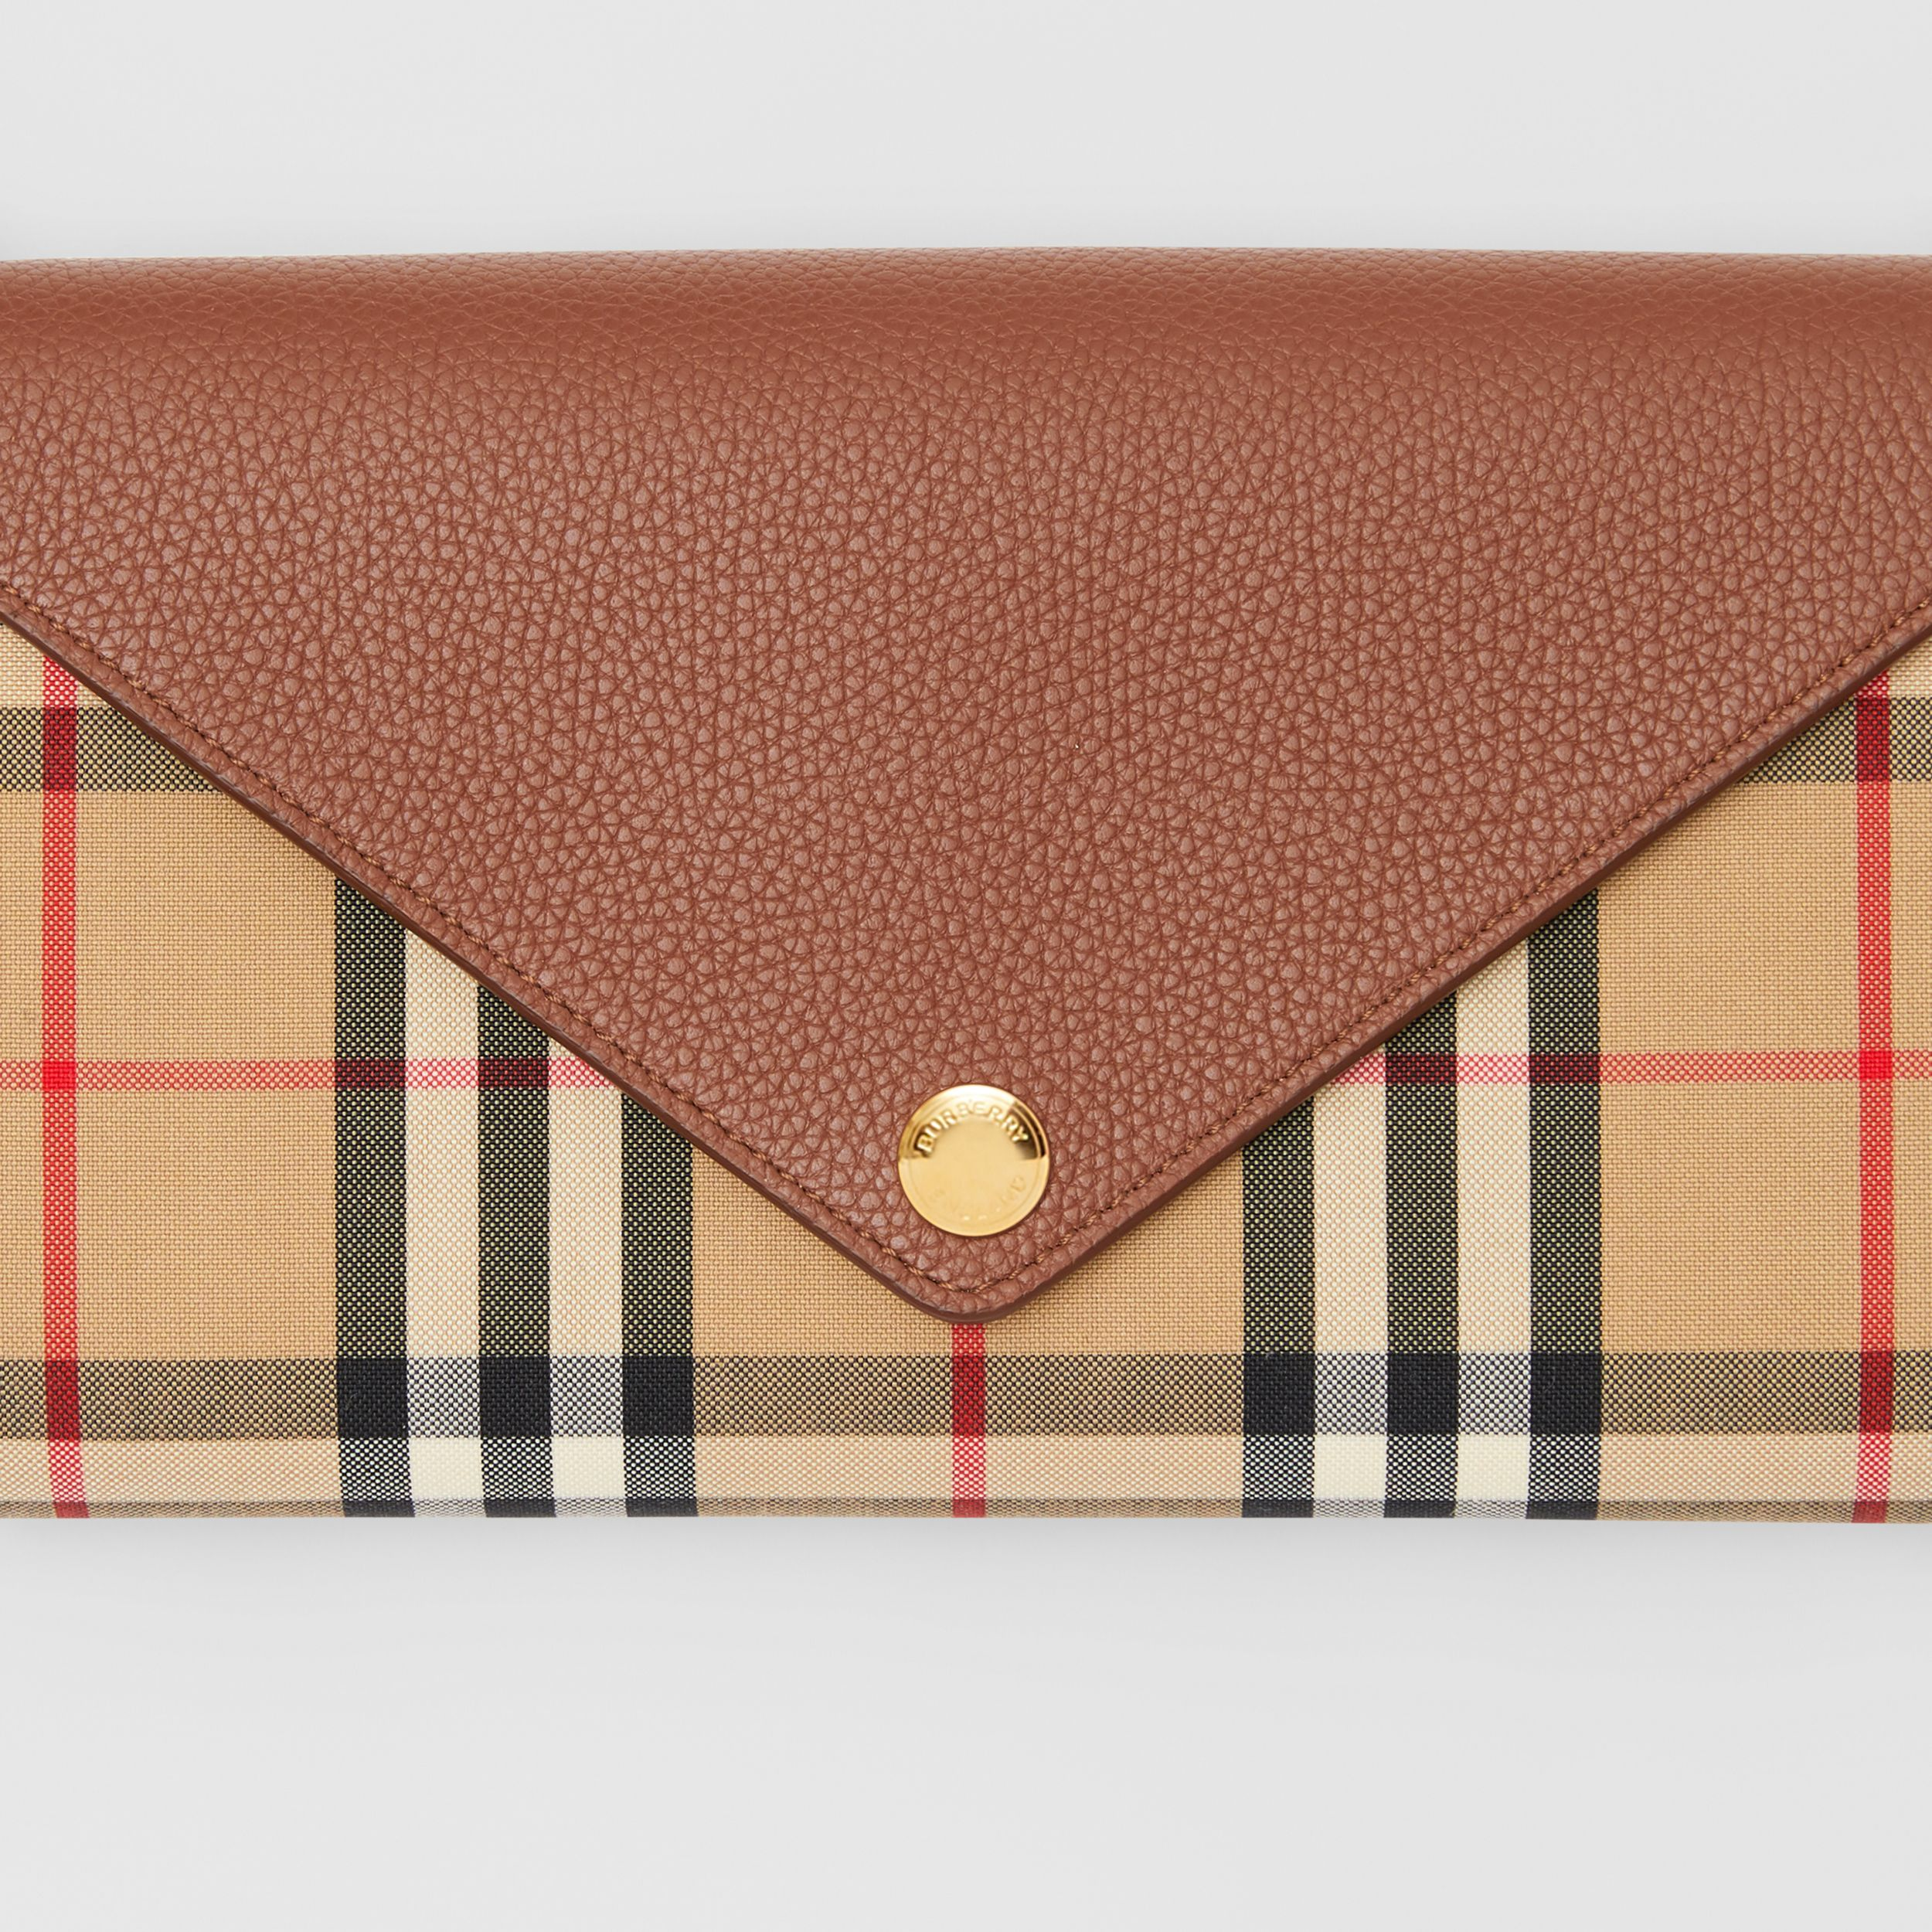 Vintage Check and Leather Wallet with Detachable Strap in Tan - Women | Burberry - 2